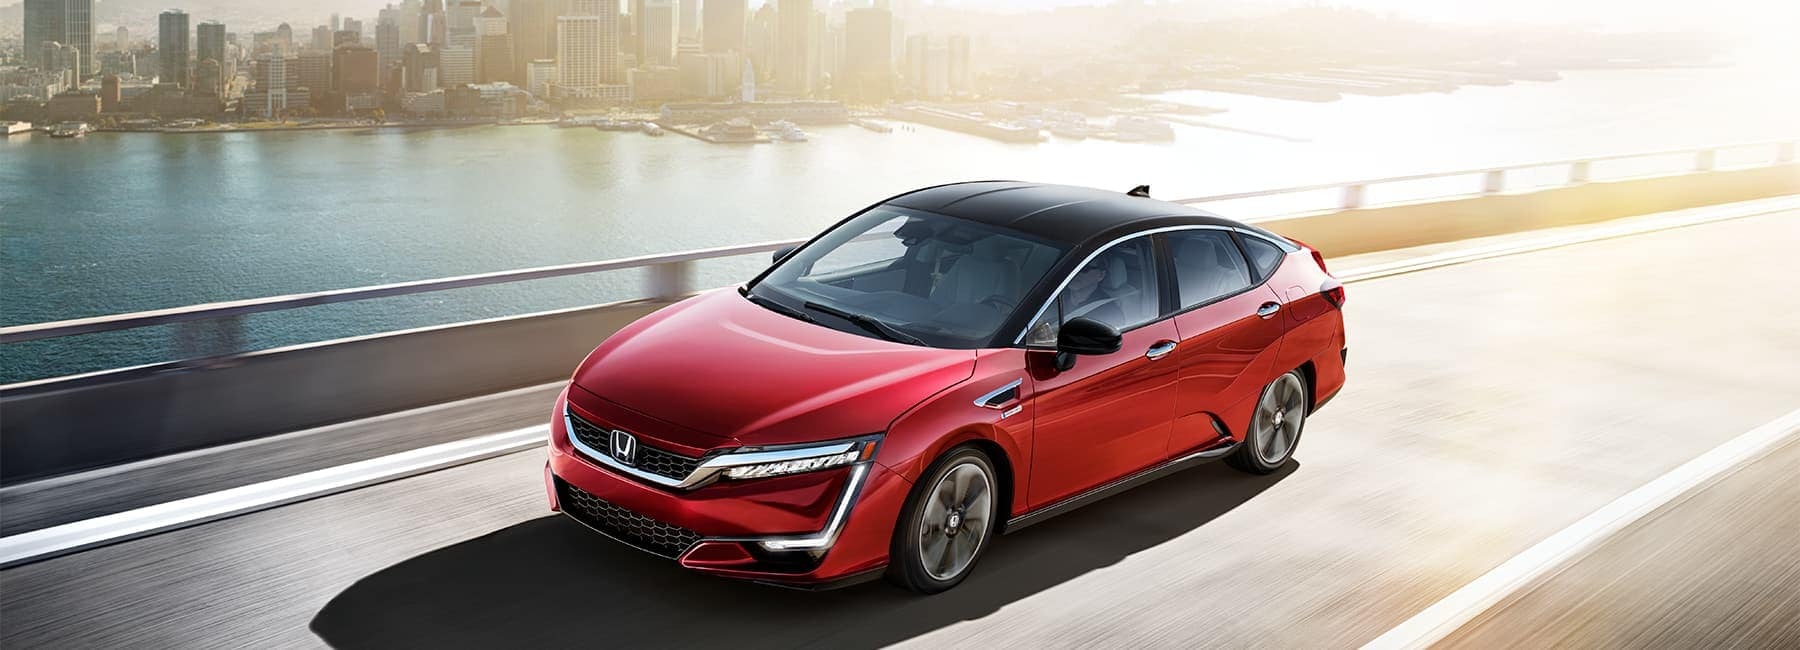 2020-honda-clarity-driving-city-background